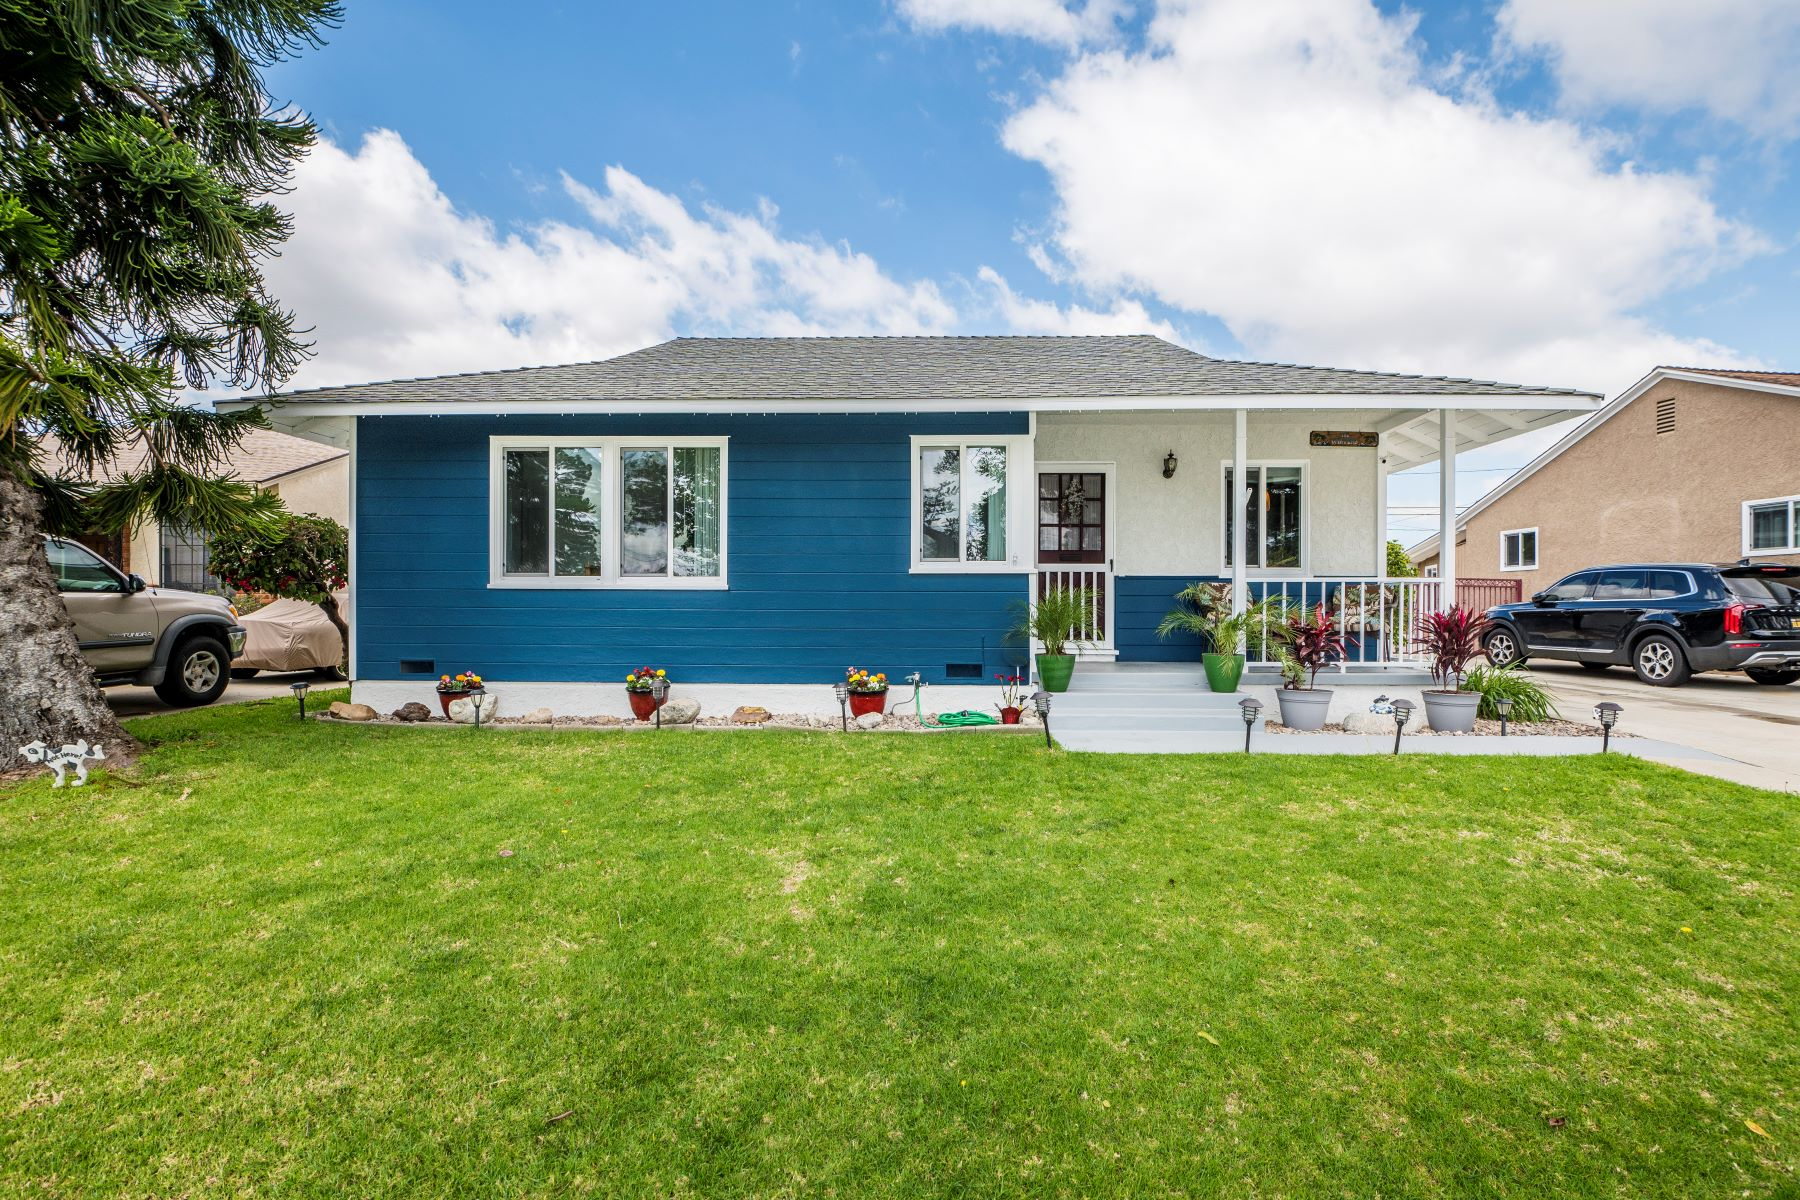 Single Family Homes for Sale at 14721 Fonthill Avenue, Hawthorne, CA 90250 14721 Fonthill Avenue Hawthorne, California 90250 United States